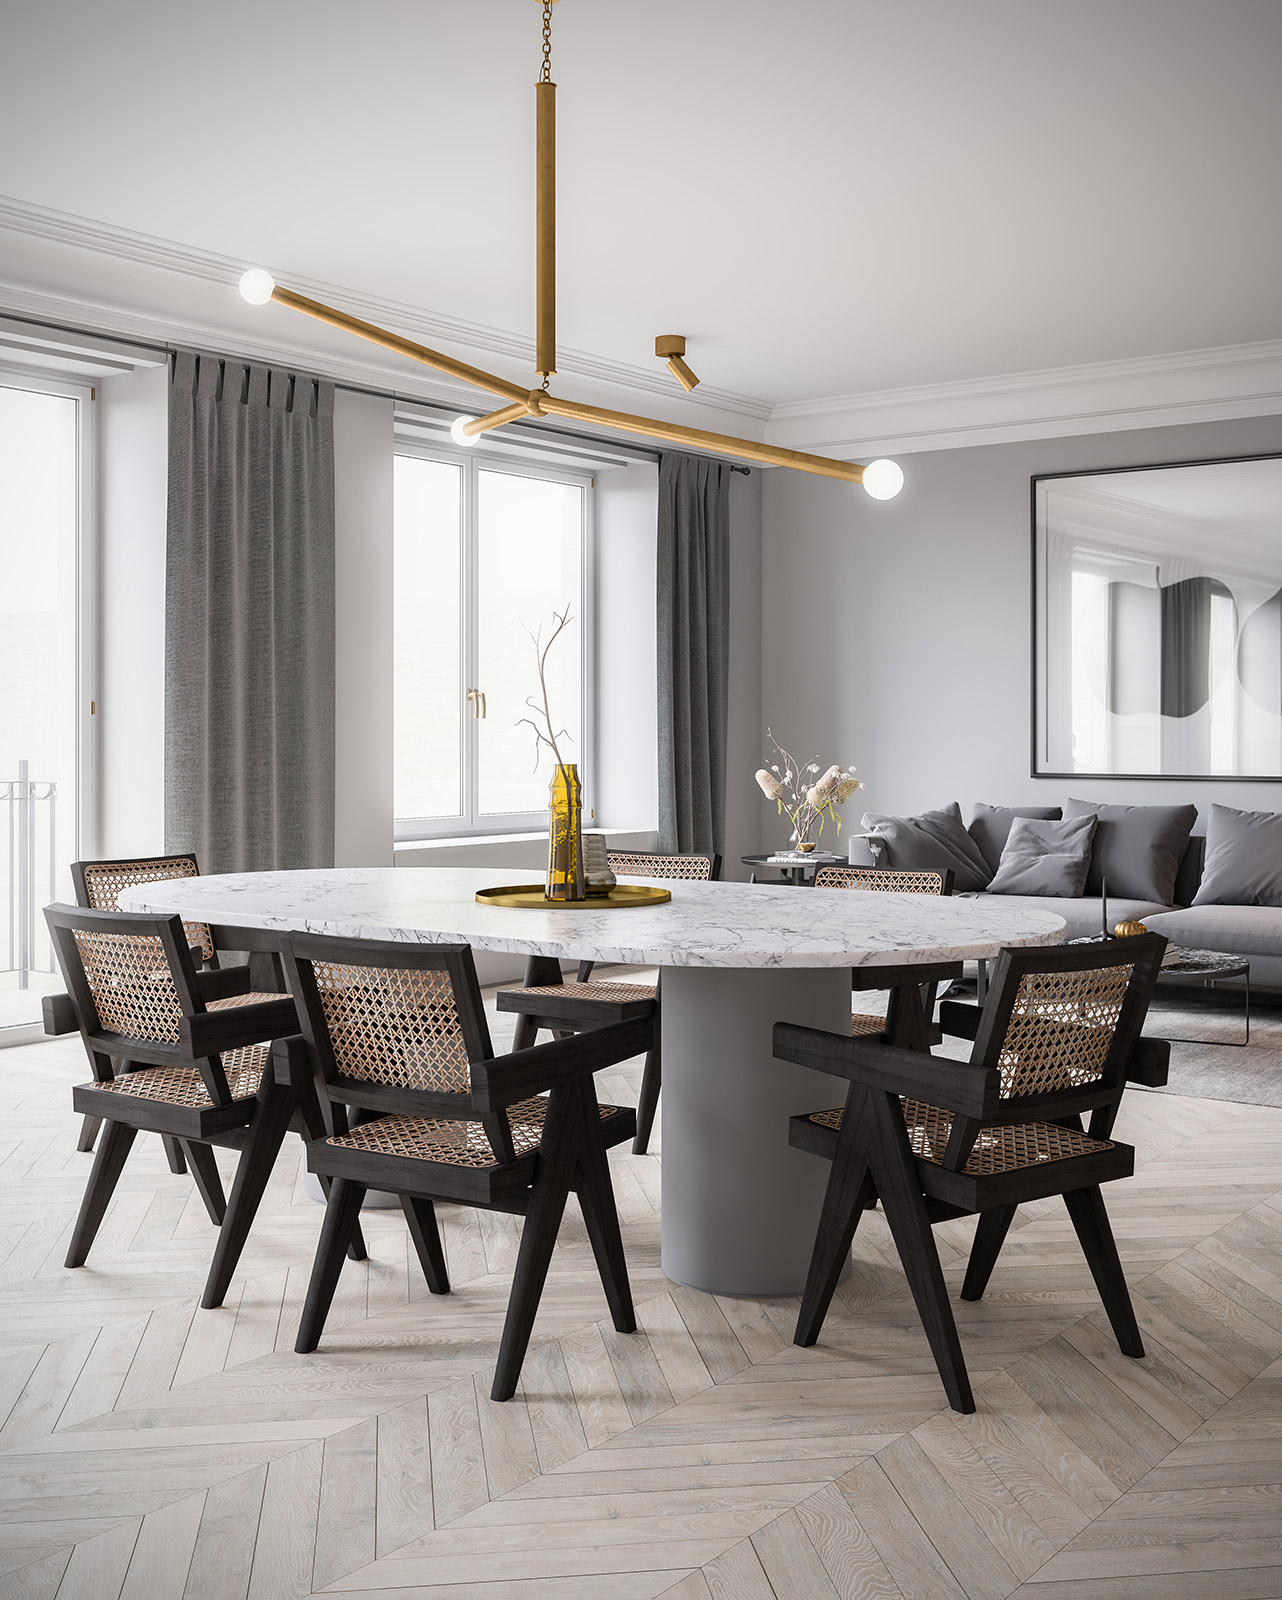 3d interior render. ScreenAge featured project - MIST Dining Table 1